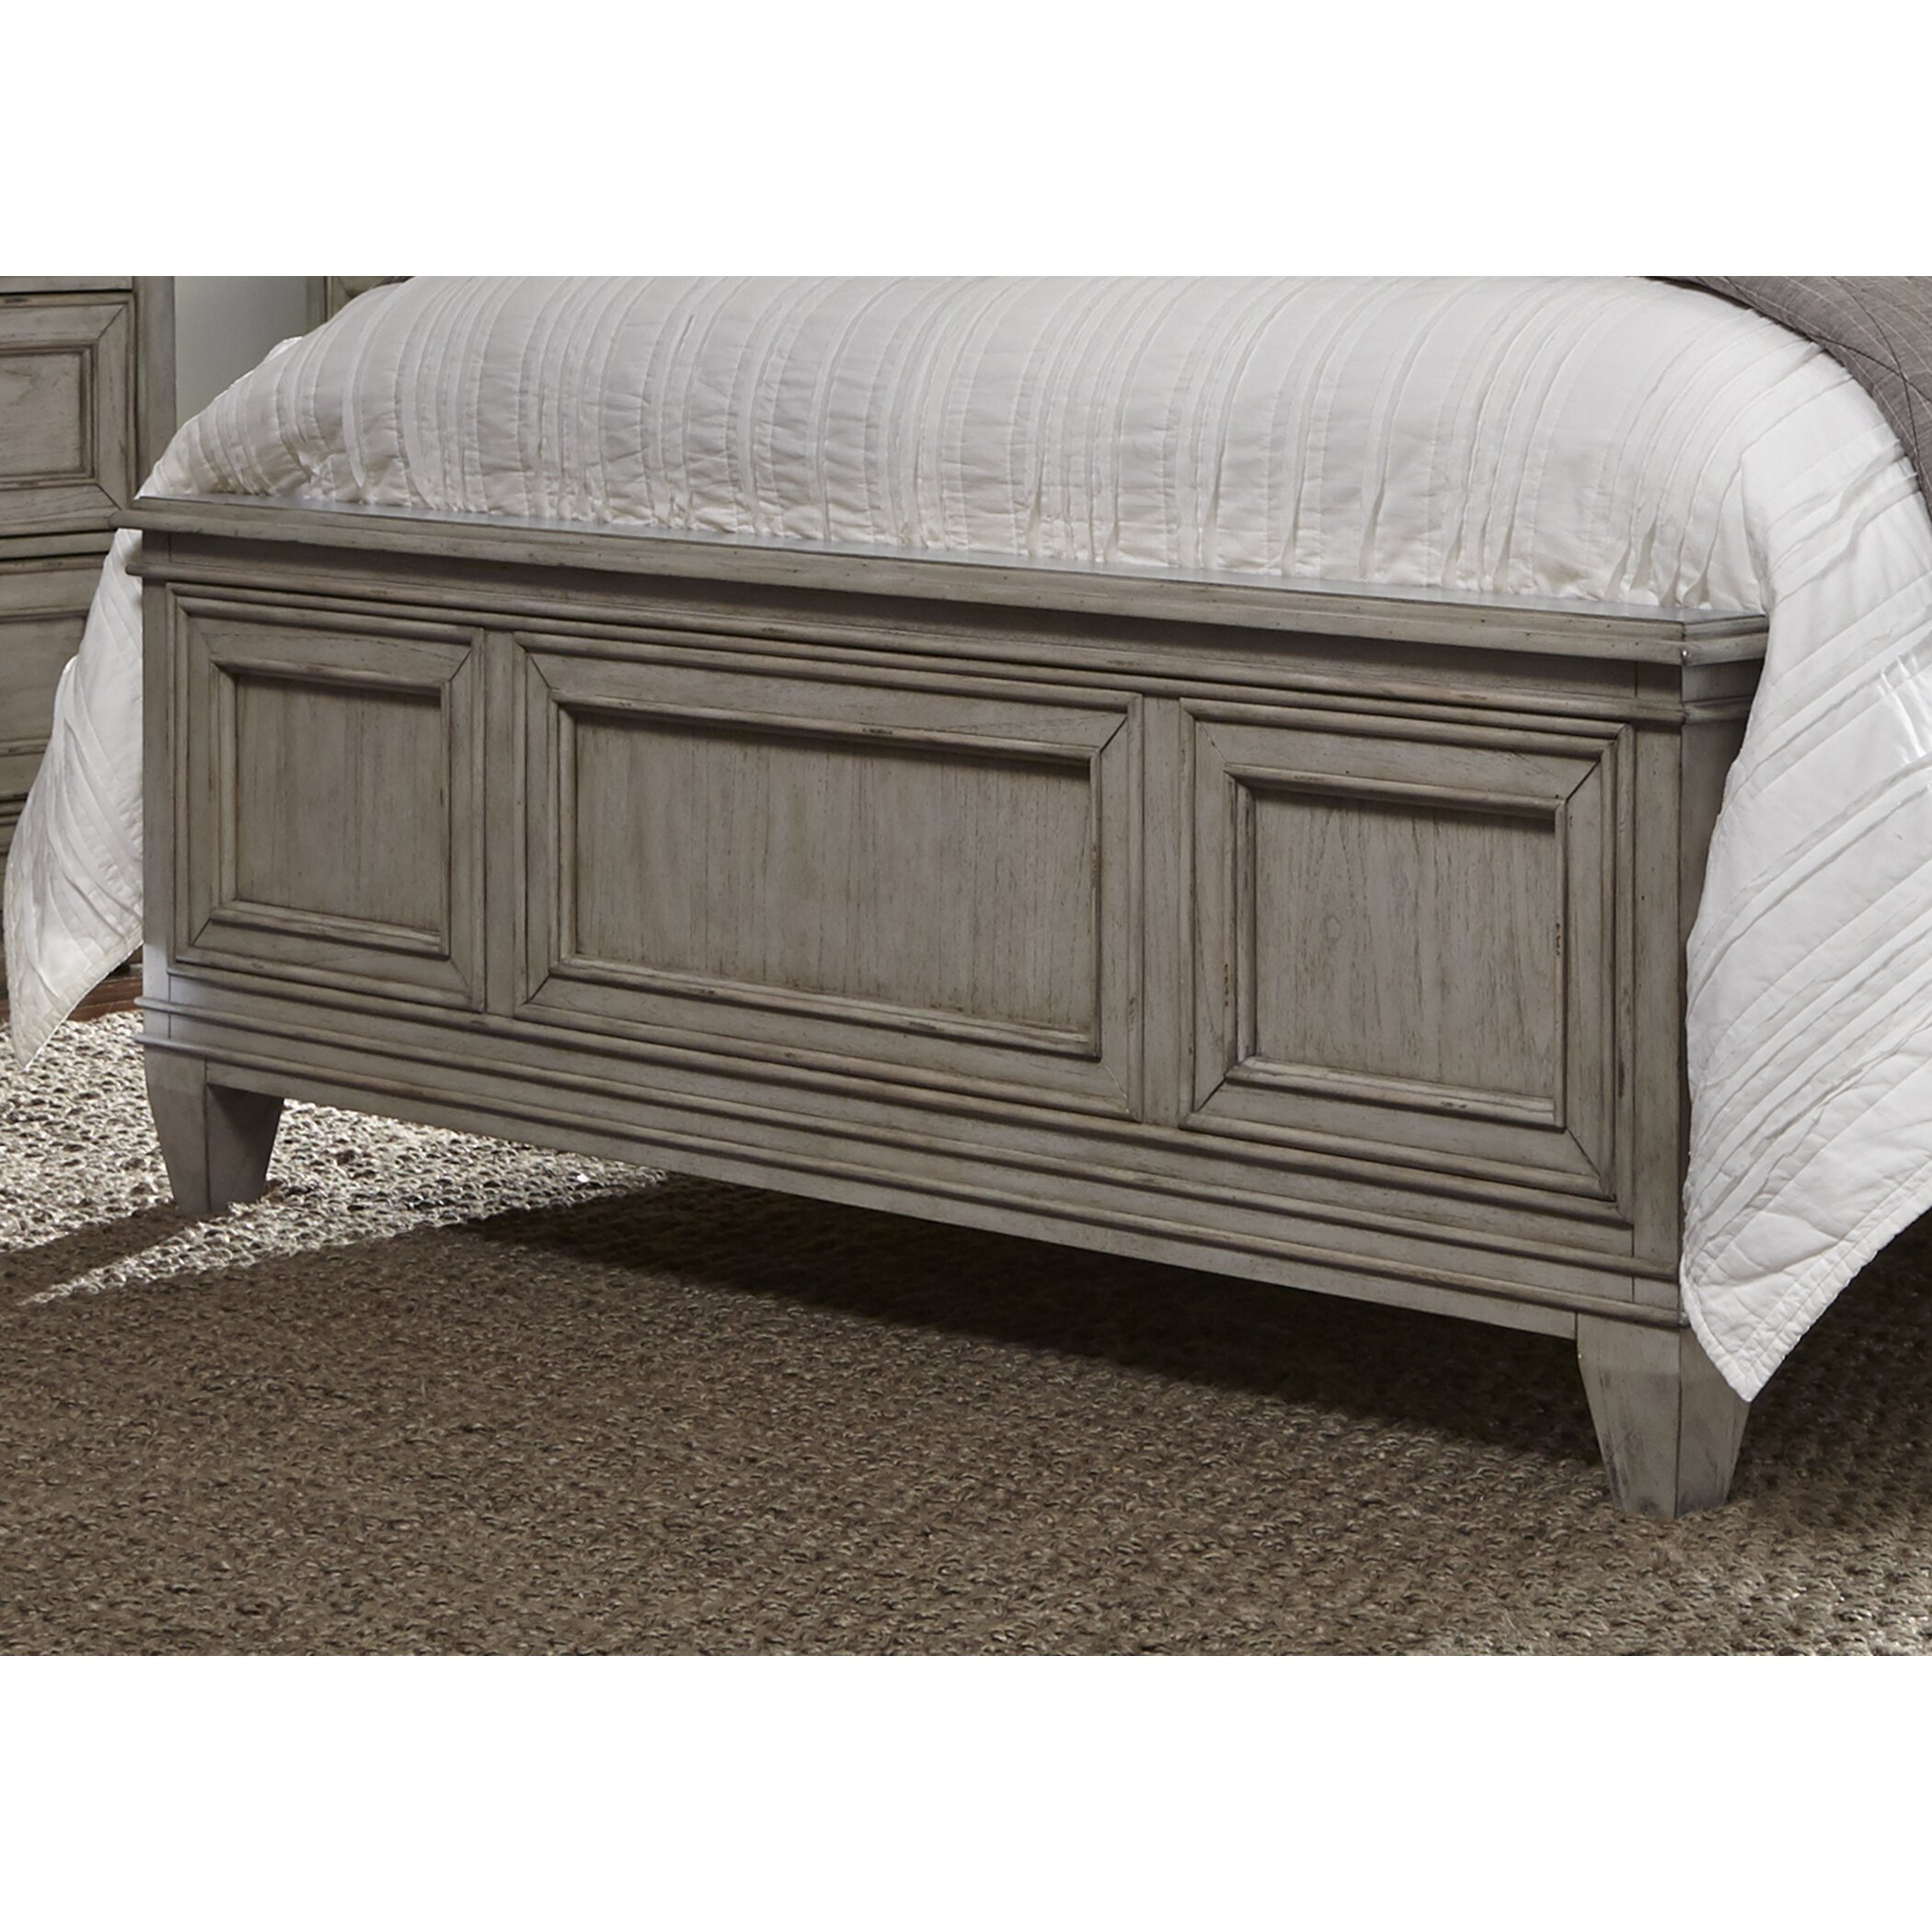 Darby Home Co Chippewa Panel Bedroom Furniture